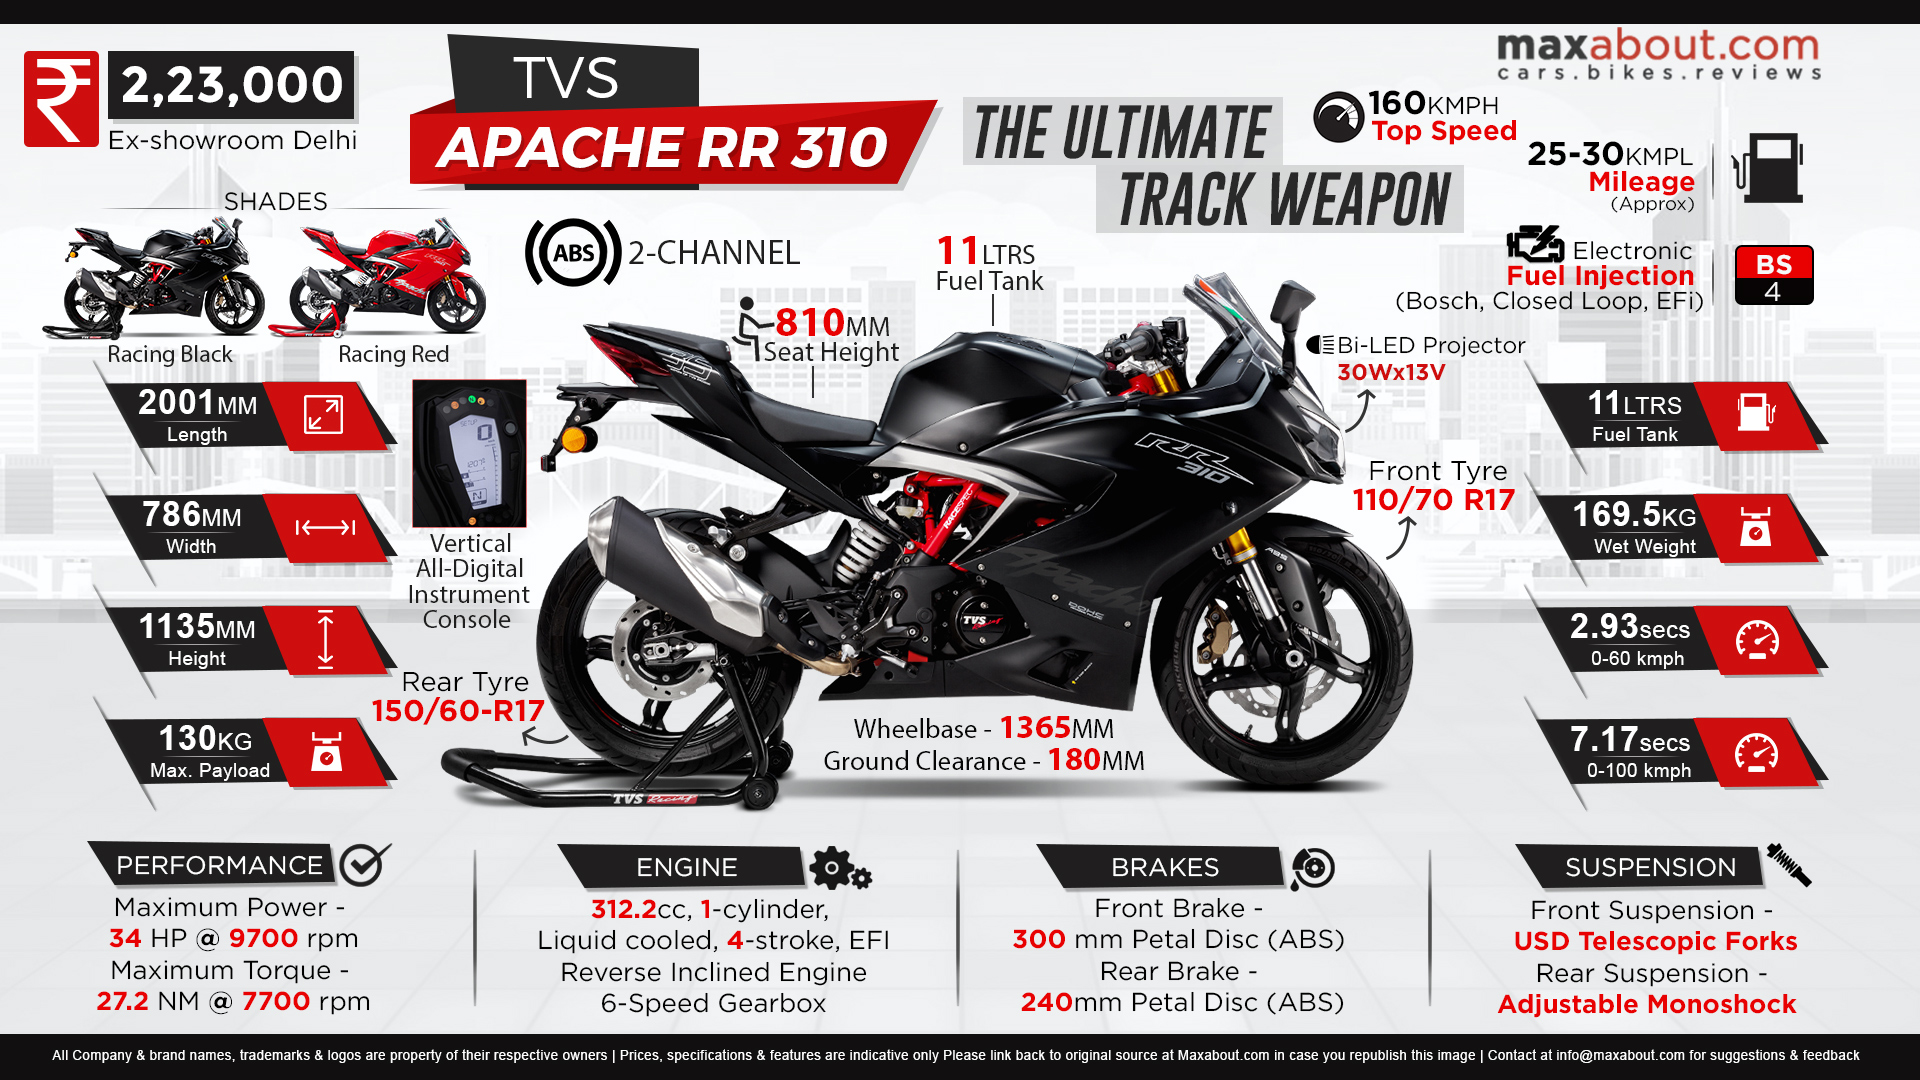 TVS Apache RR 310 The Ultimate Track Weapon 1920x1080